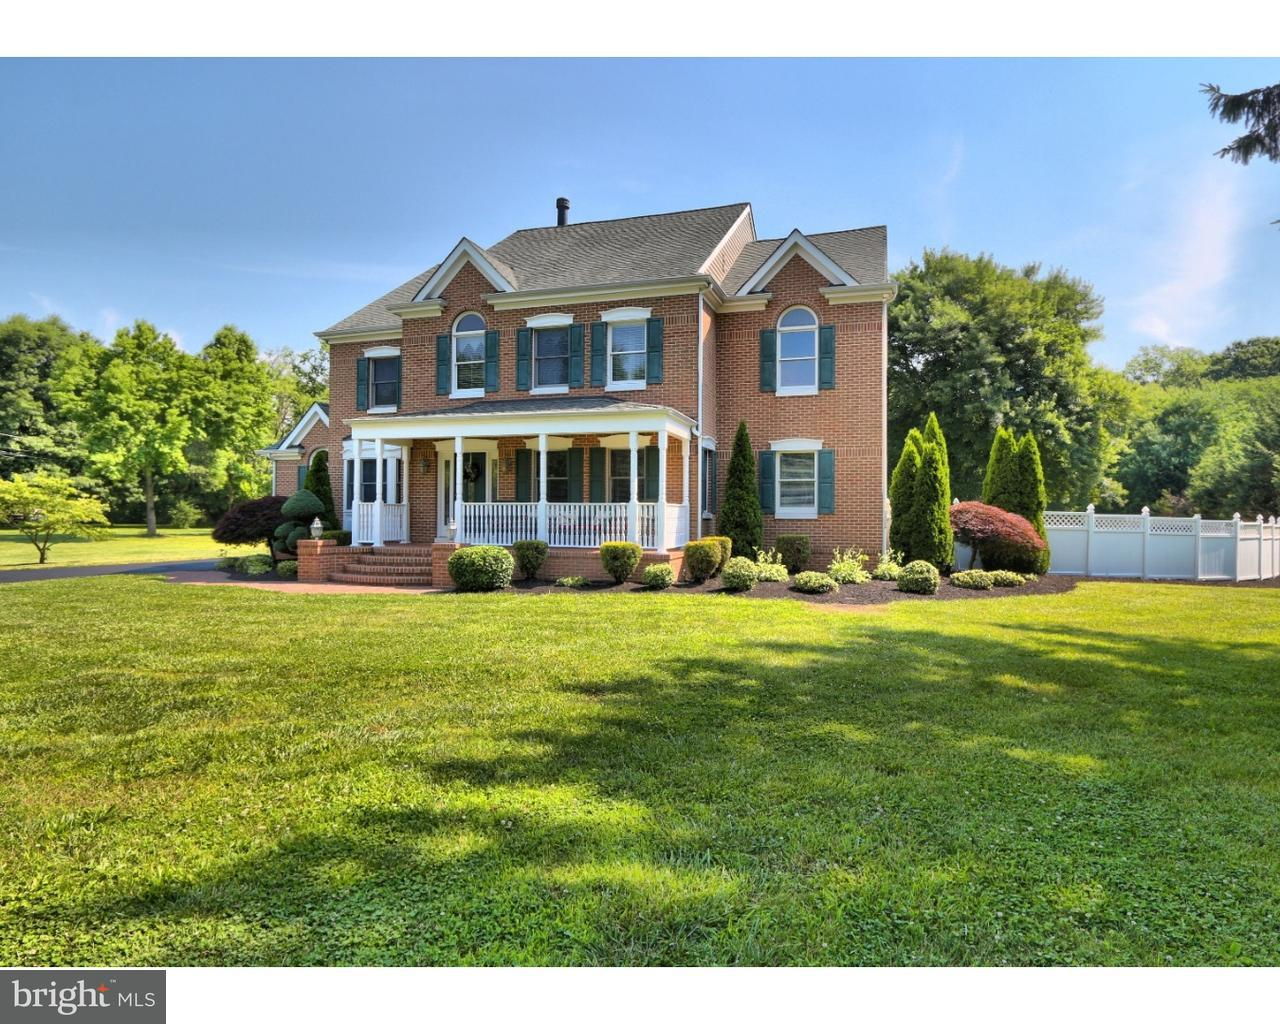 Single Family Home for Sale at 1011 POTTS MILL Road Bordentown, New Jersey 08505 United States